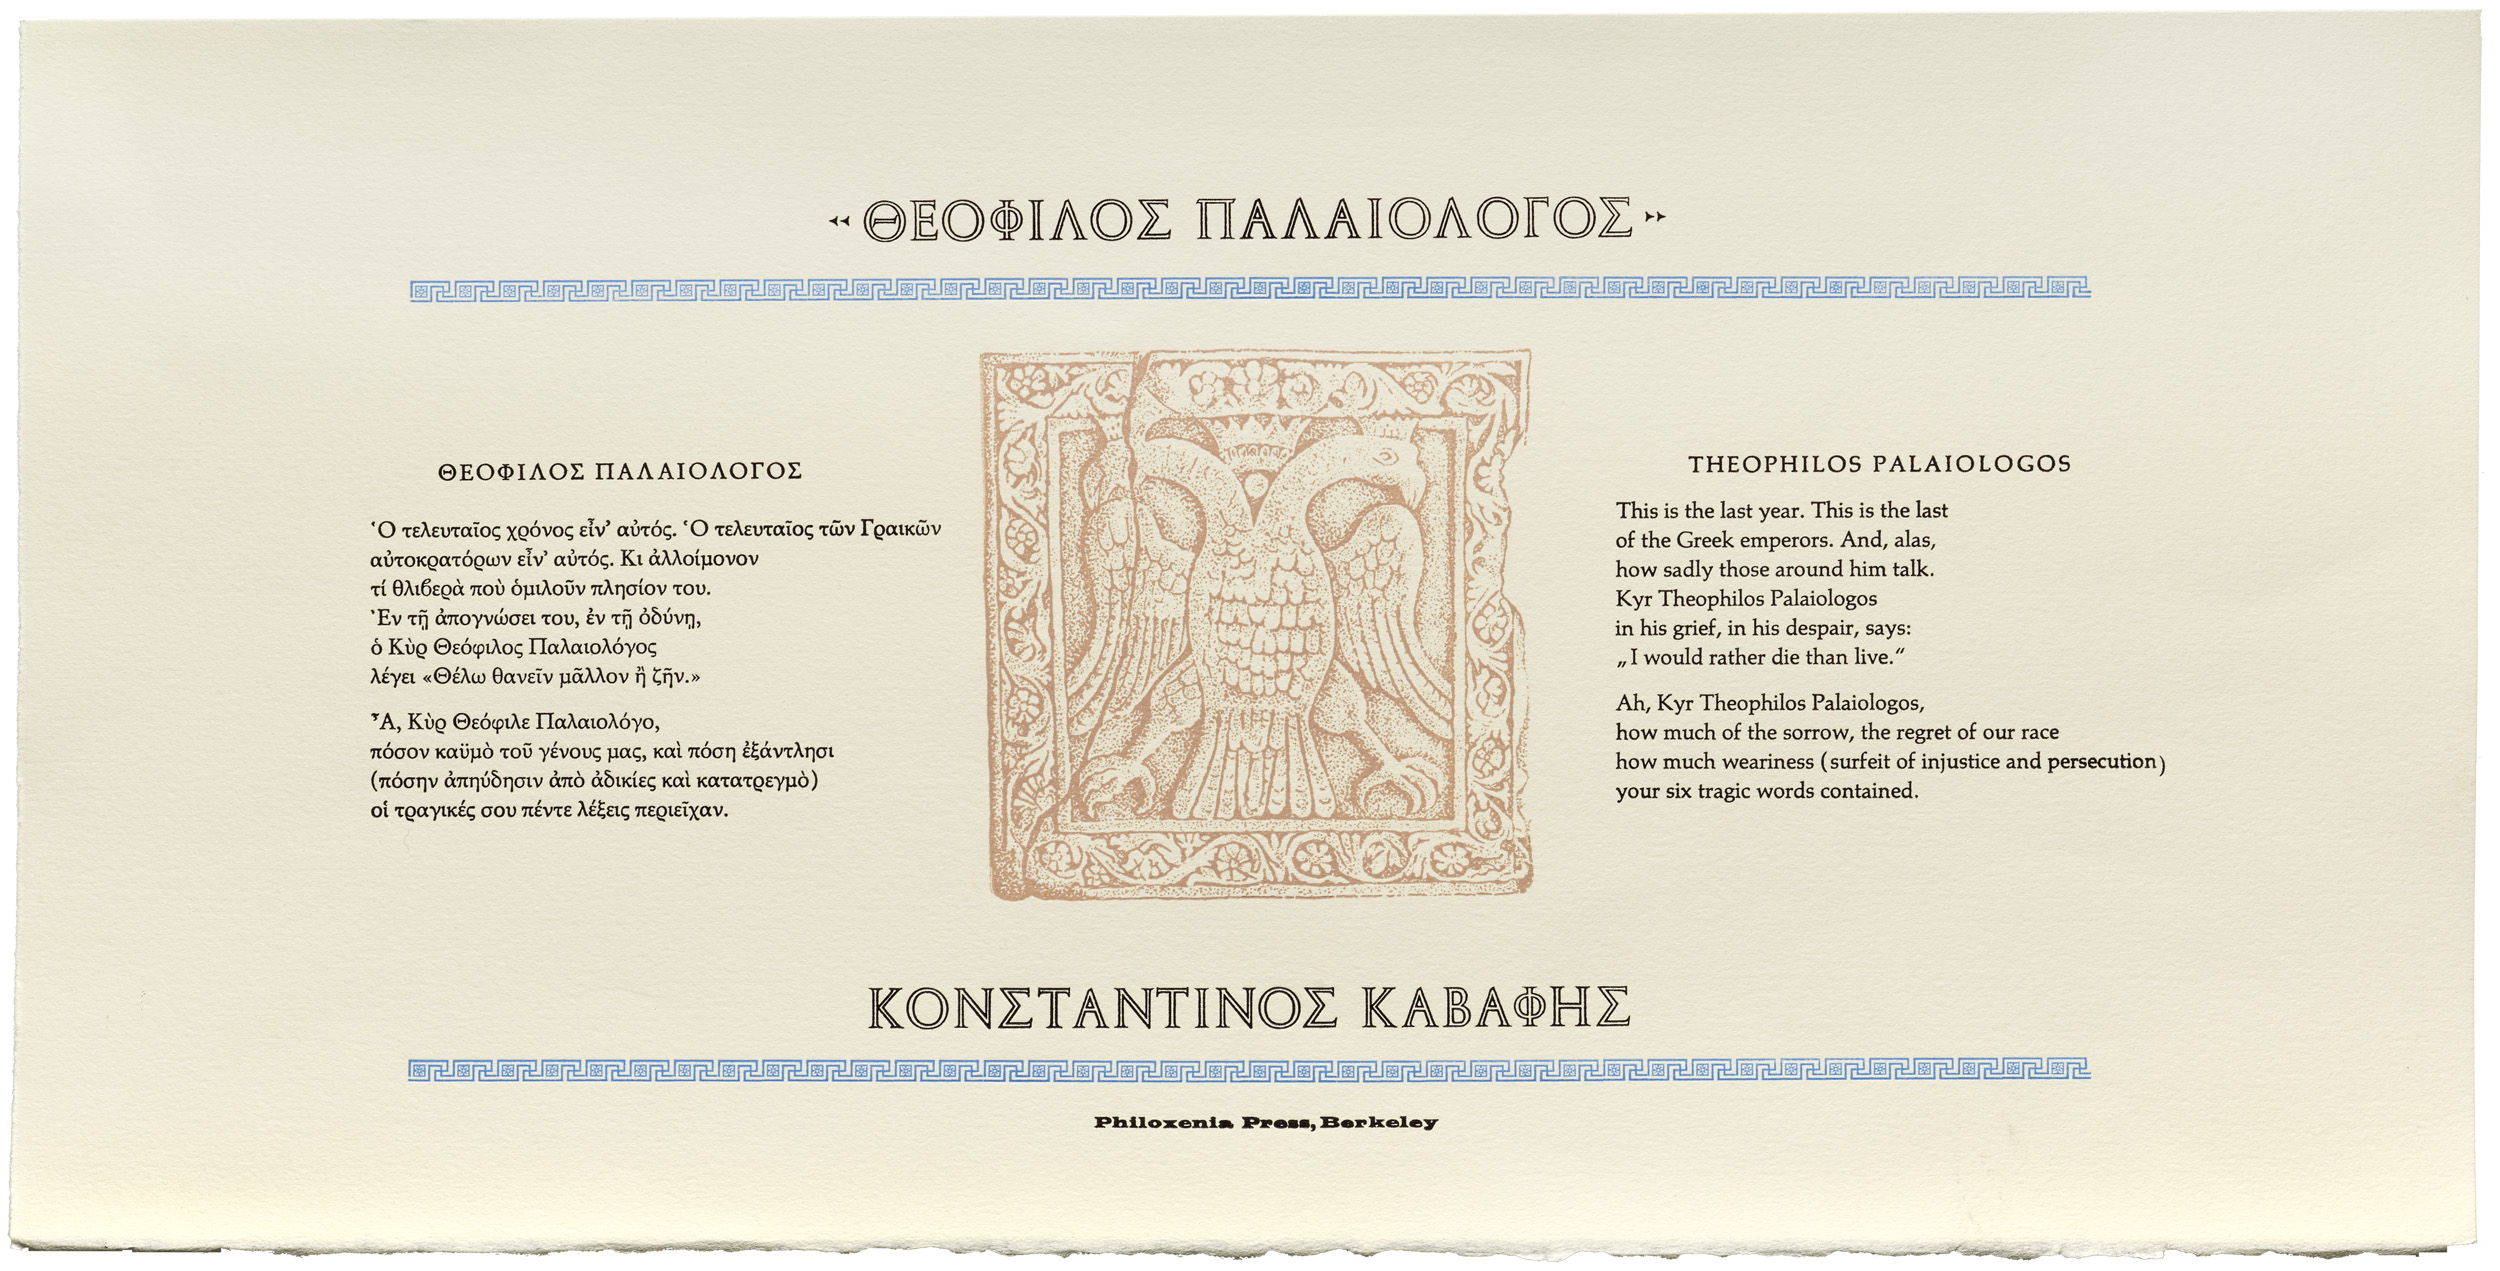 Broadside. Konstantinos Cavafys. Theophilos Palaiologos. 12 point Heraklit Classical Greek & 12 point Palatino, Hermann Zapf. With vignette of the door lintel from the last Byzantine palace in Mistra. Size 9.5 x 18.5.